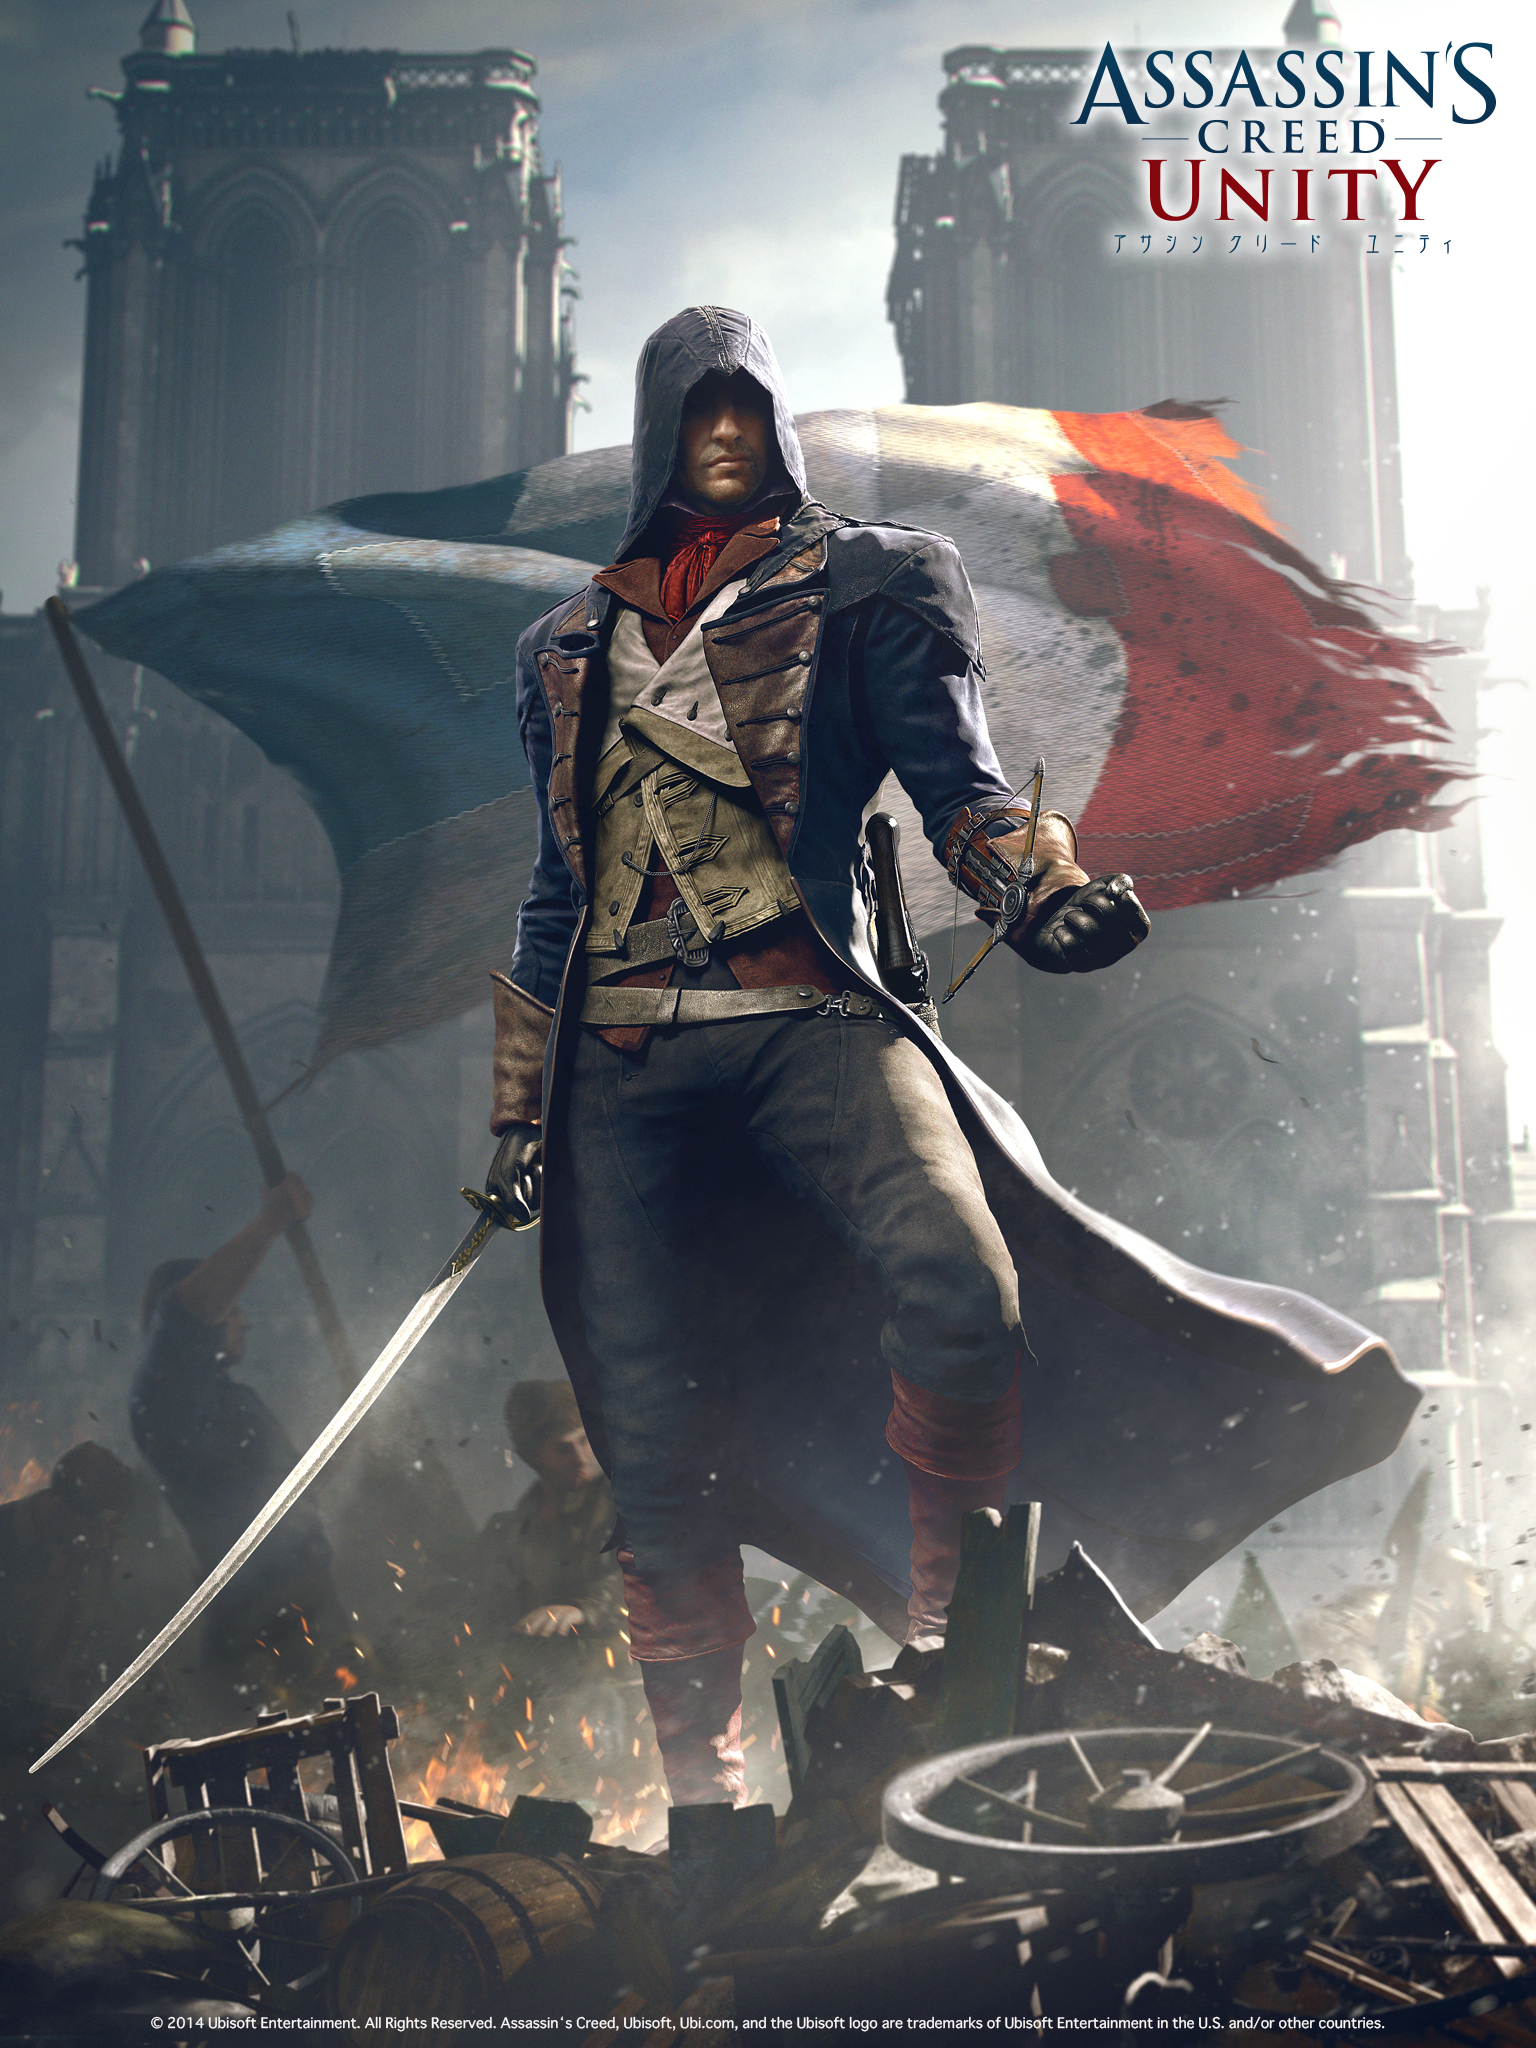 Assassins creed unity assassins creed unity voltagebd Gallery